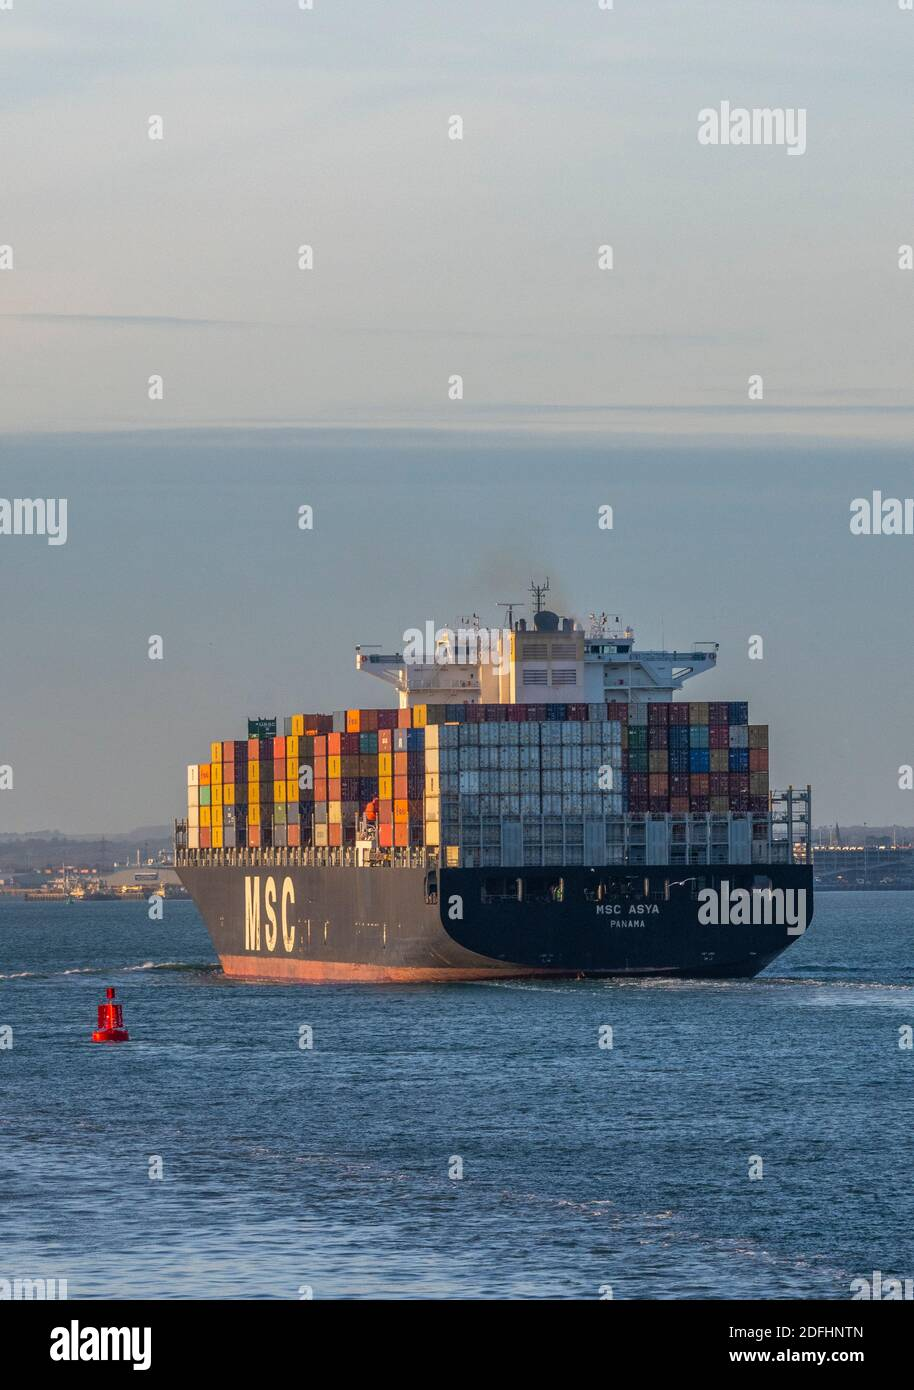 a large container ship MSC asya entering the port of southampton docks with a full cargo or load of colourful containers on board. Stock Photo